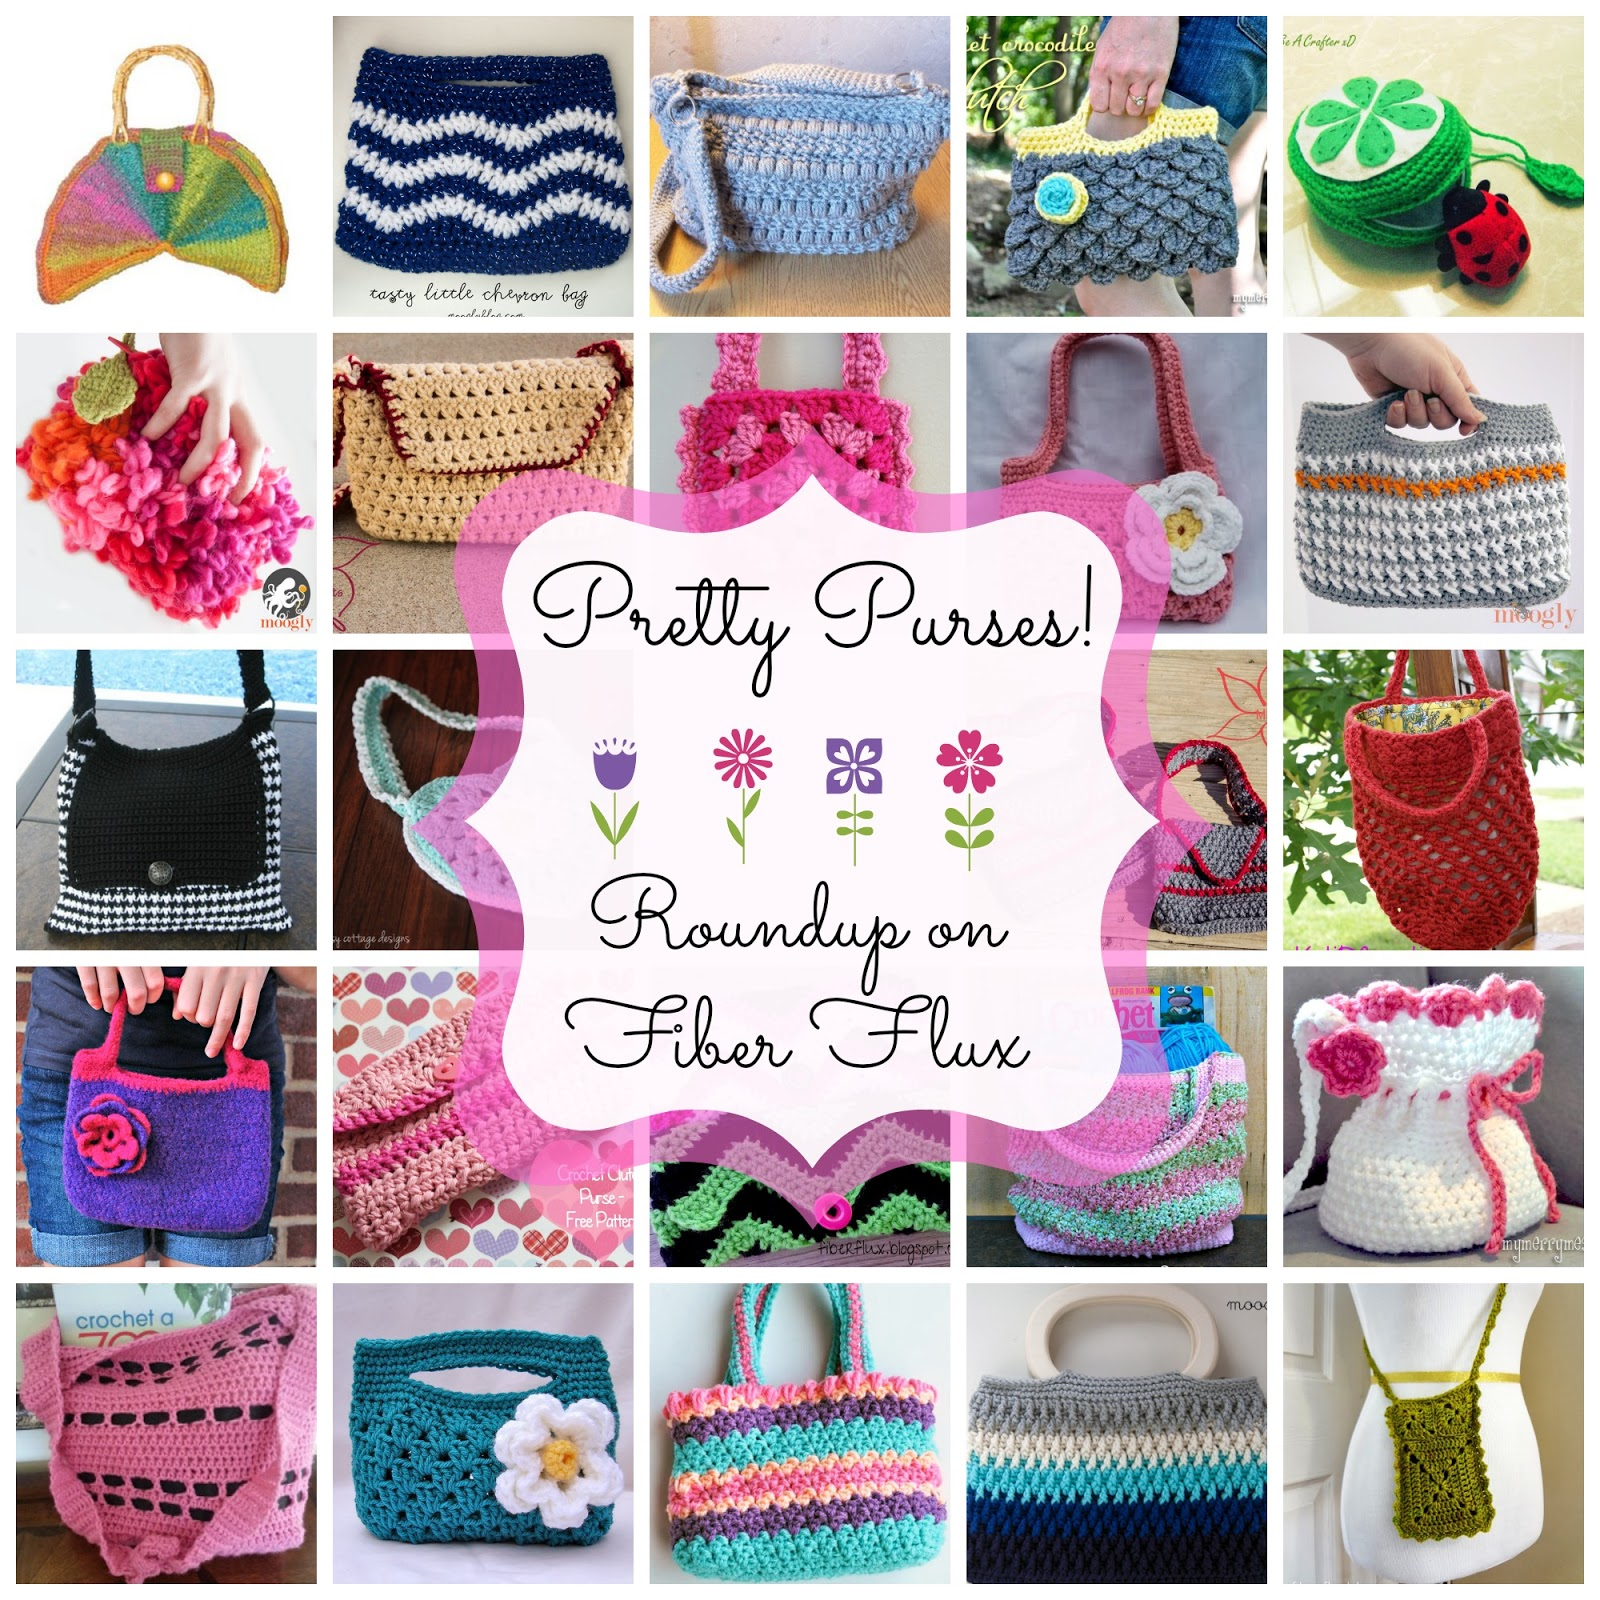 Fiber flux pretty purses 20 free crochet purse patterns i love purses and you can never have too many in my opinion here are some purses ive collected just for you from large bags for toting everything bankloansurffo Image collections